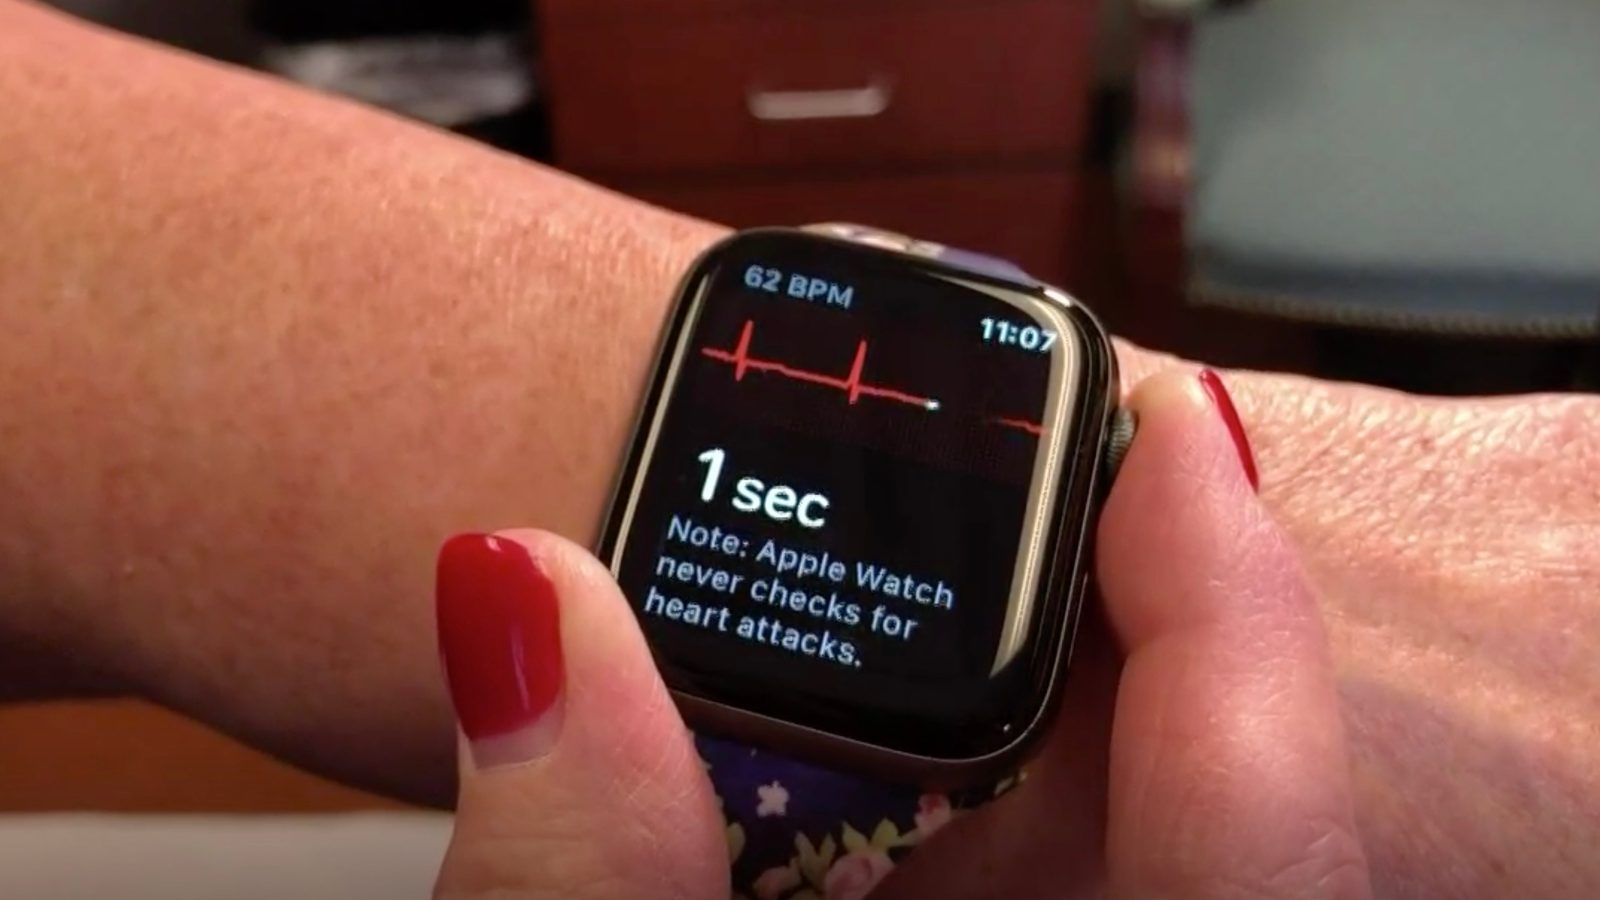 Kentucky woman credits gifted Apple Watch with detecting AFib while asleep